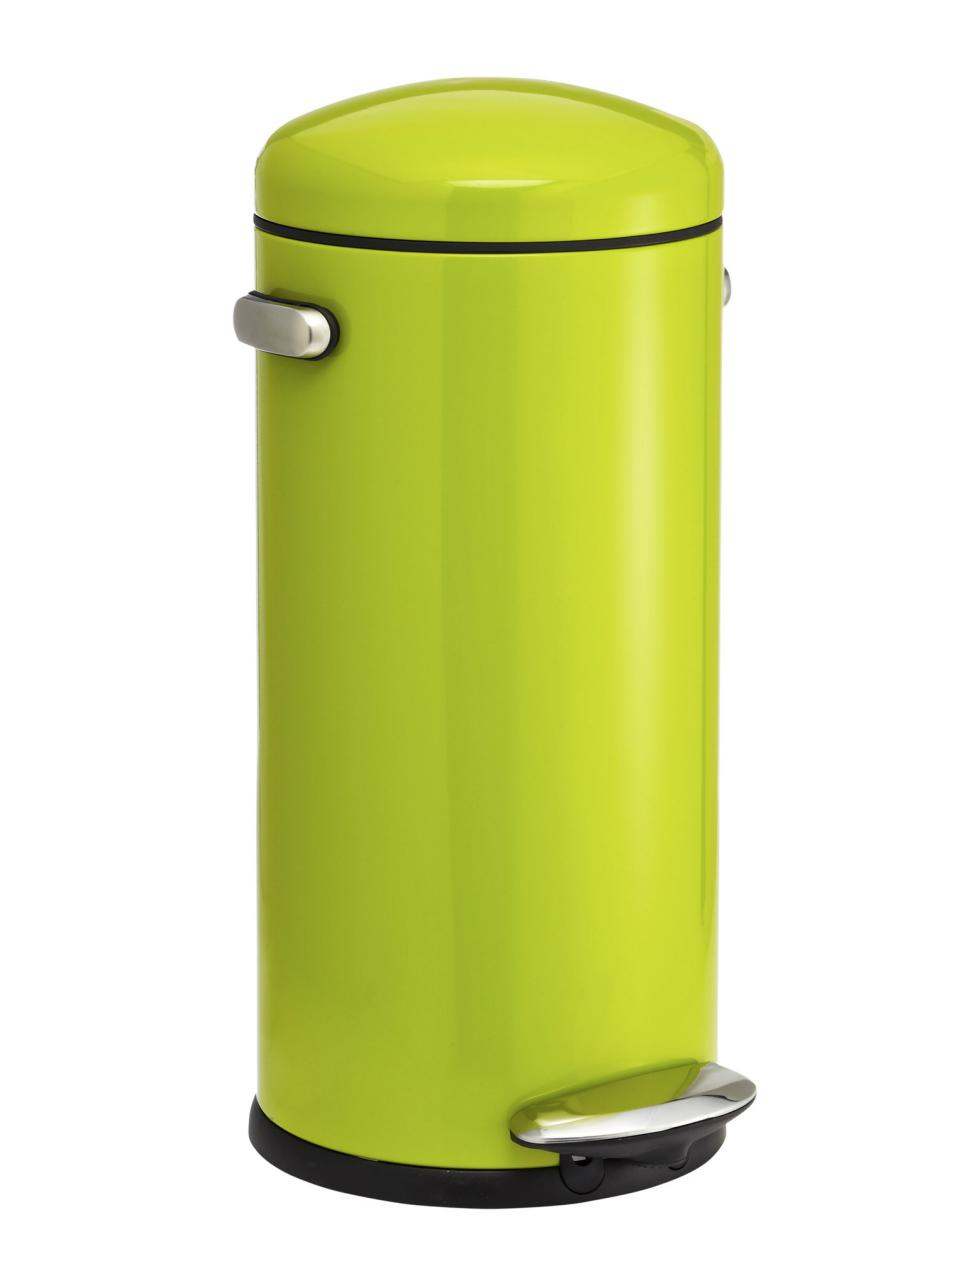 Neon Green Trash Can